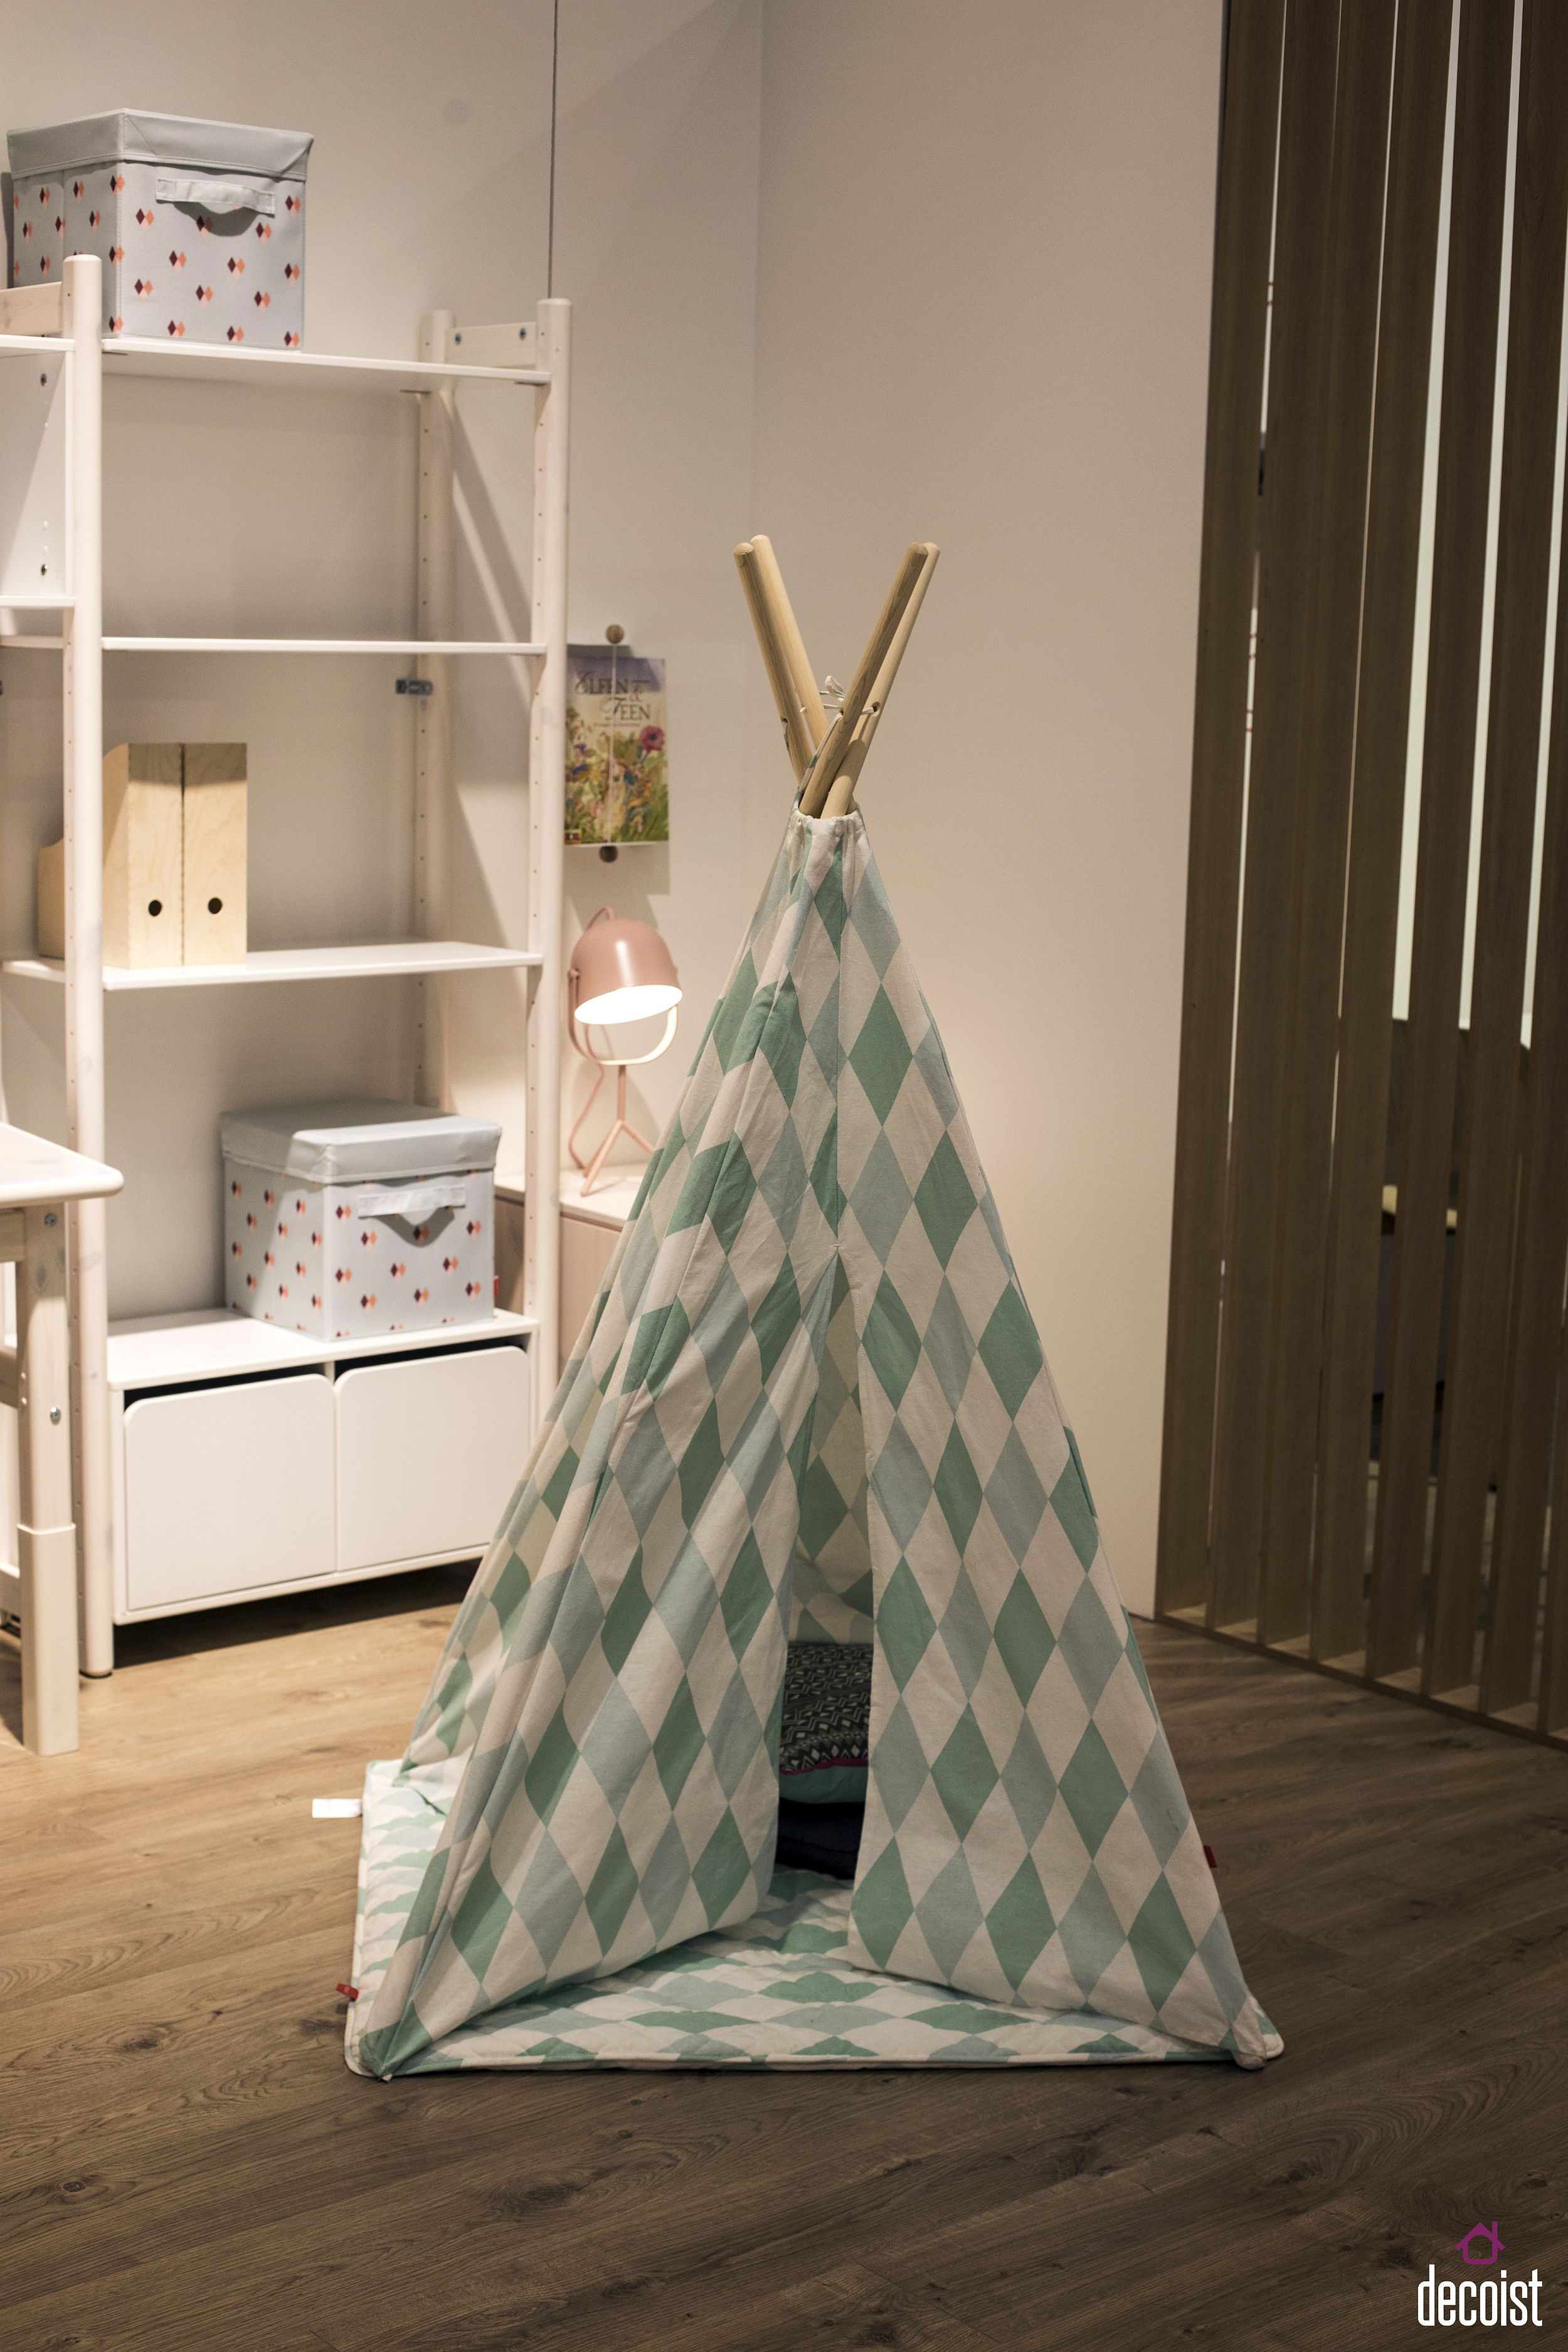 Modern teepee provides an easy way to turn an empty corner into kids' playroom